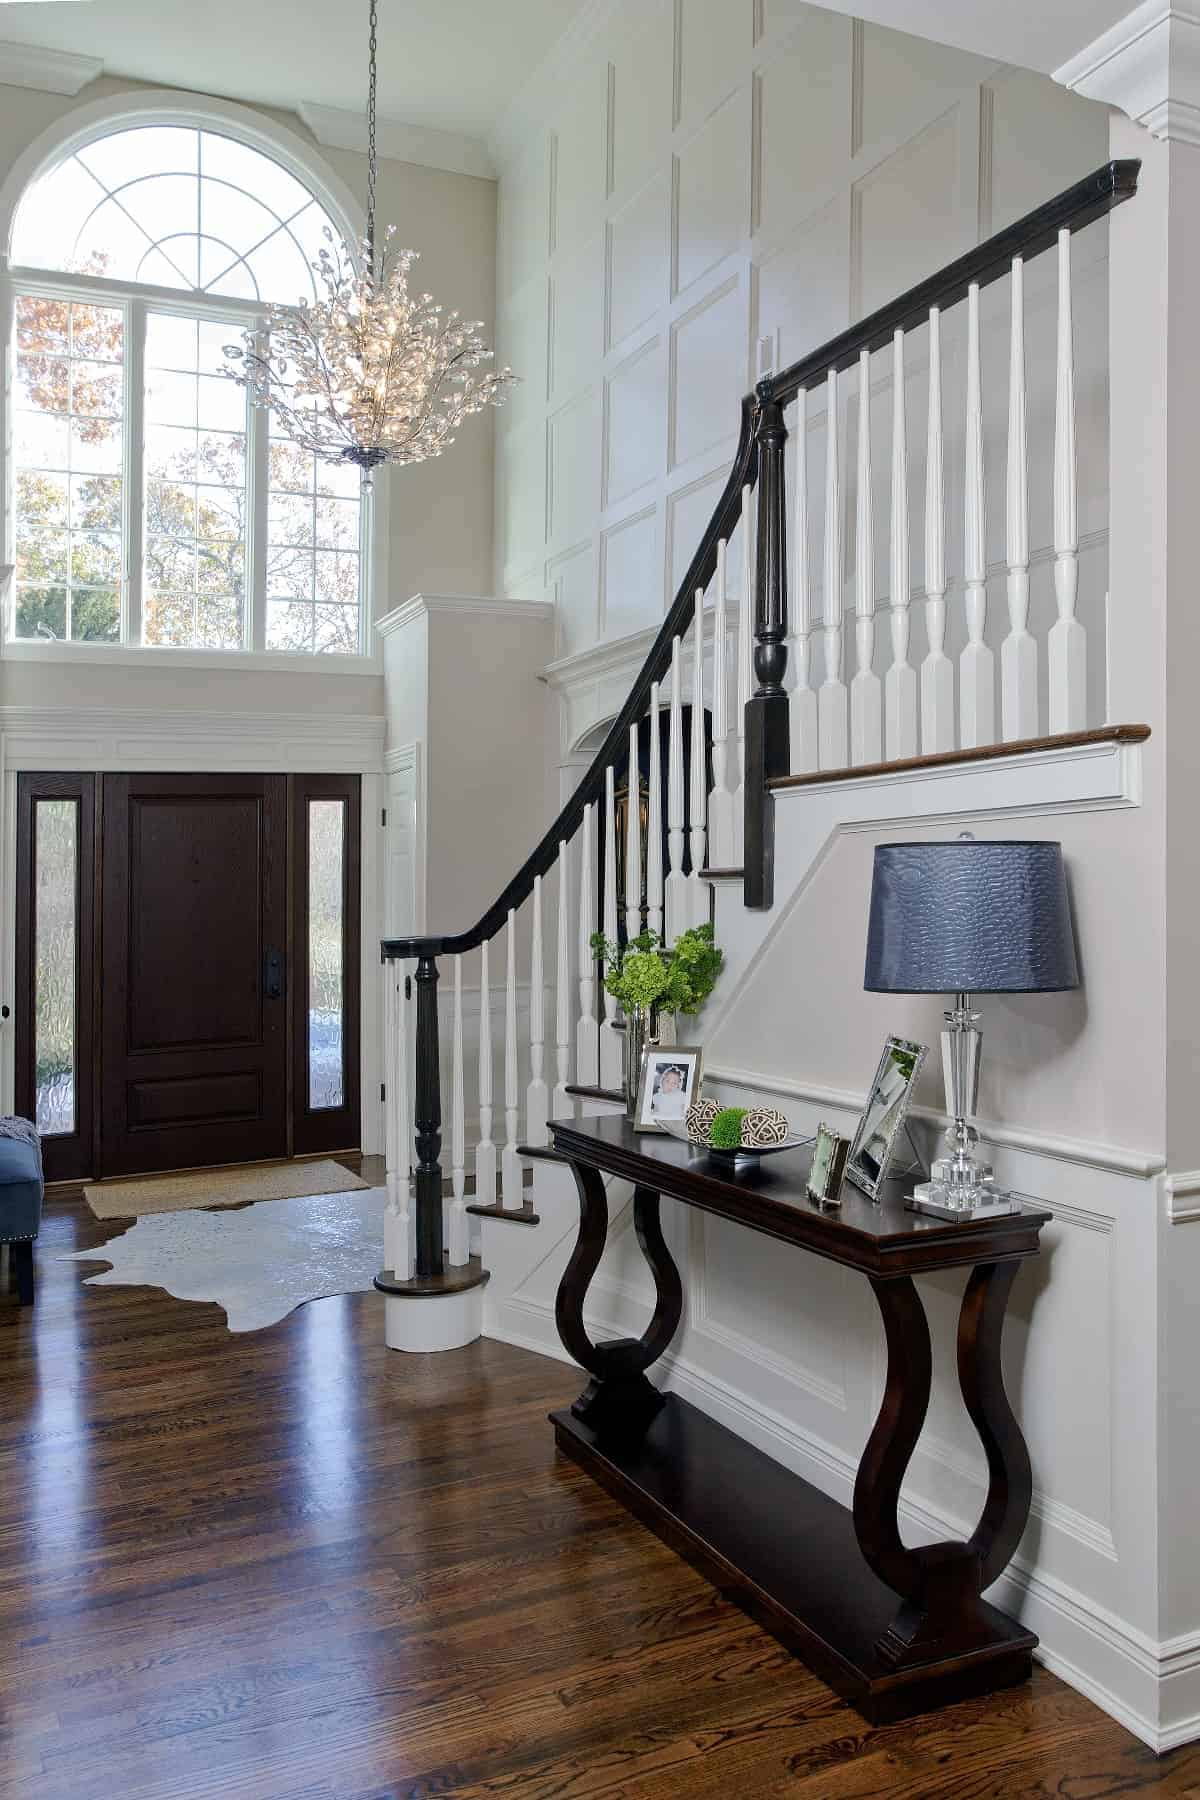 Foyer Entrance : Entry foyer interiors by just design